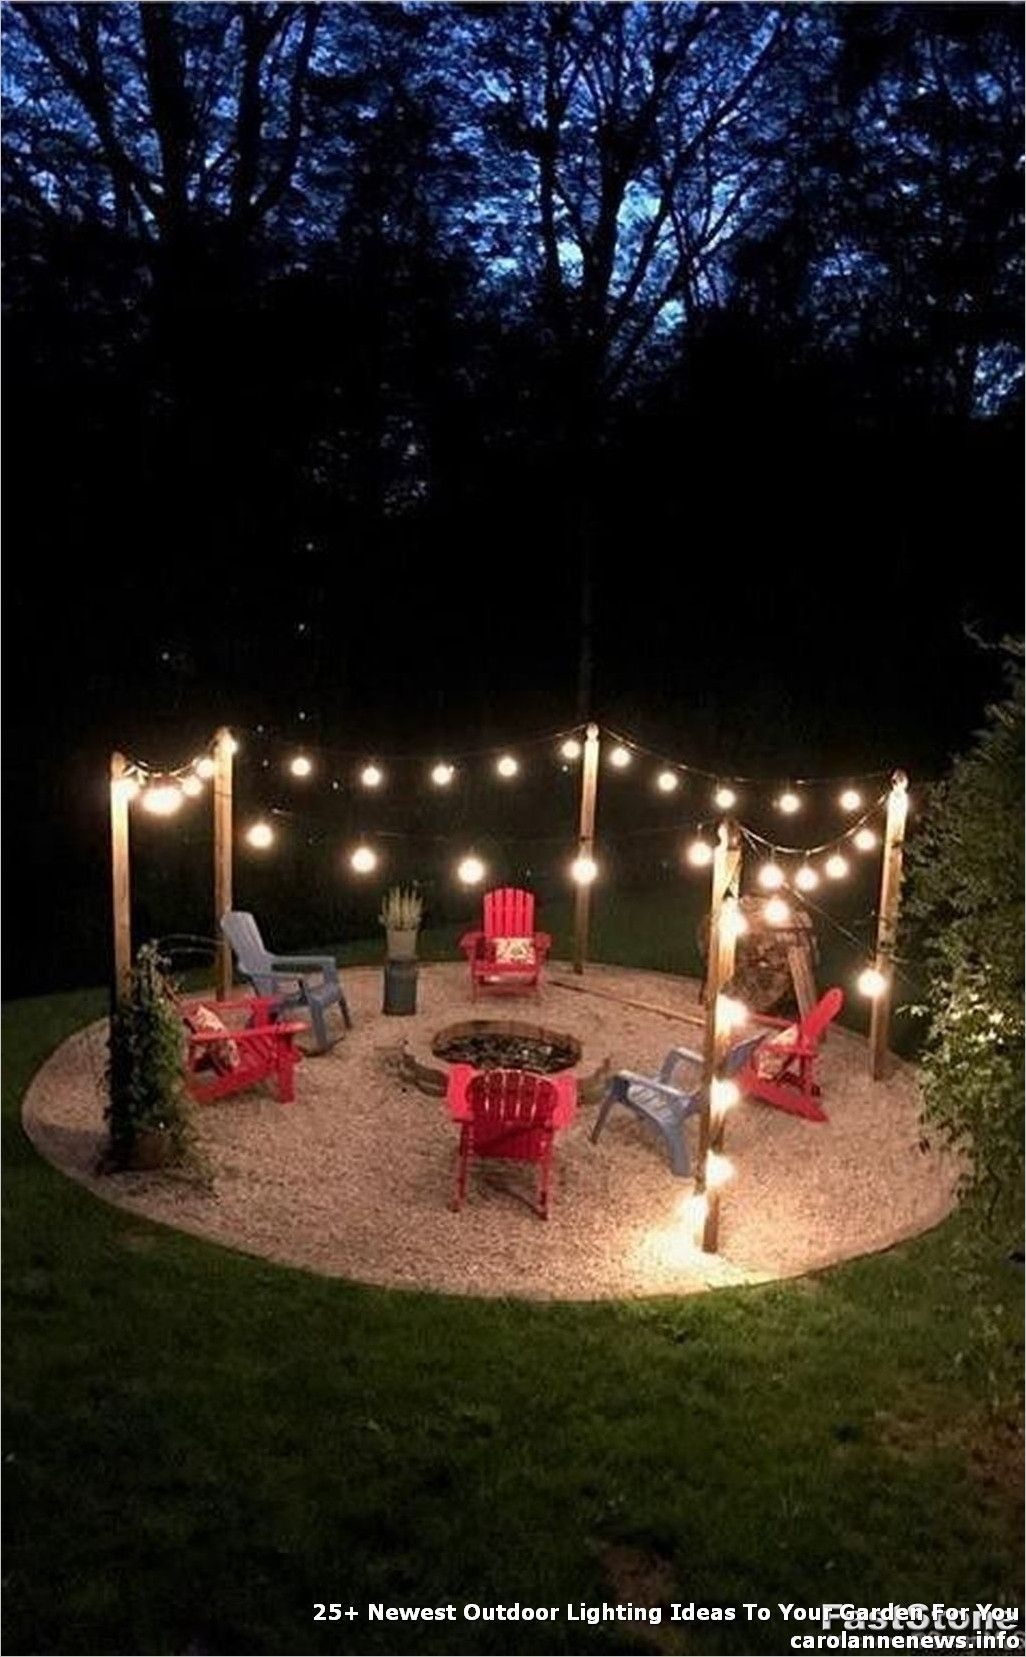 25 Newest Outdoor Lighting Ideas To Your Garden For You Page 14 Best Home Decor Ideas In 2020 Backyard Makeover Backyard Fire Backyard